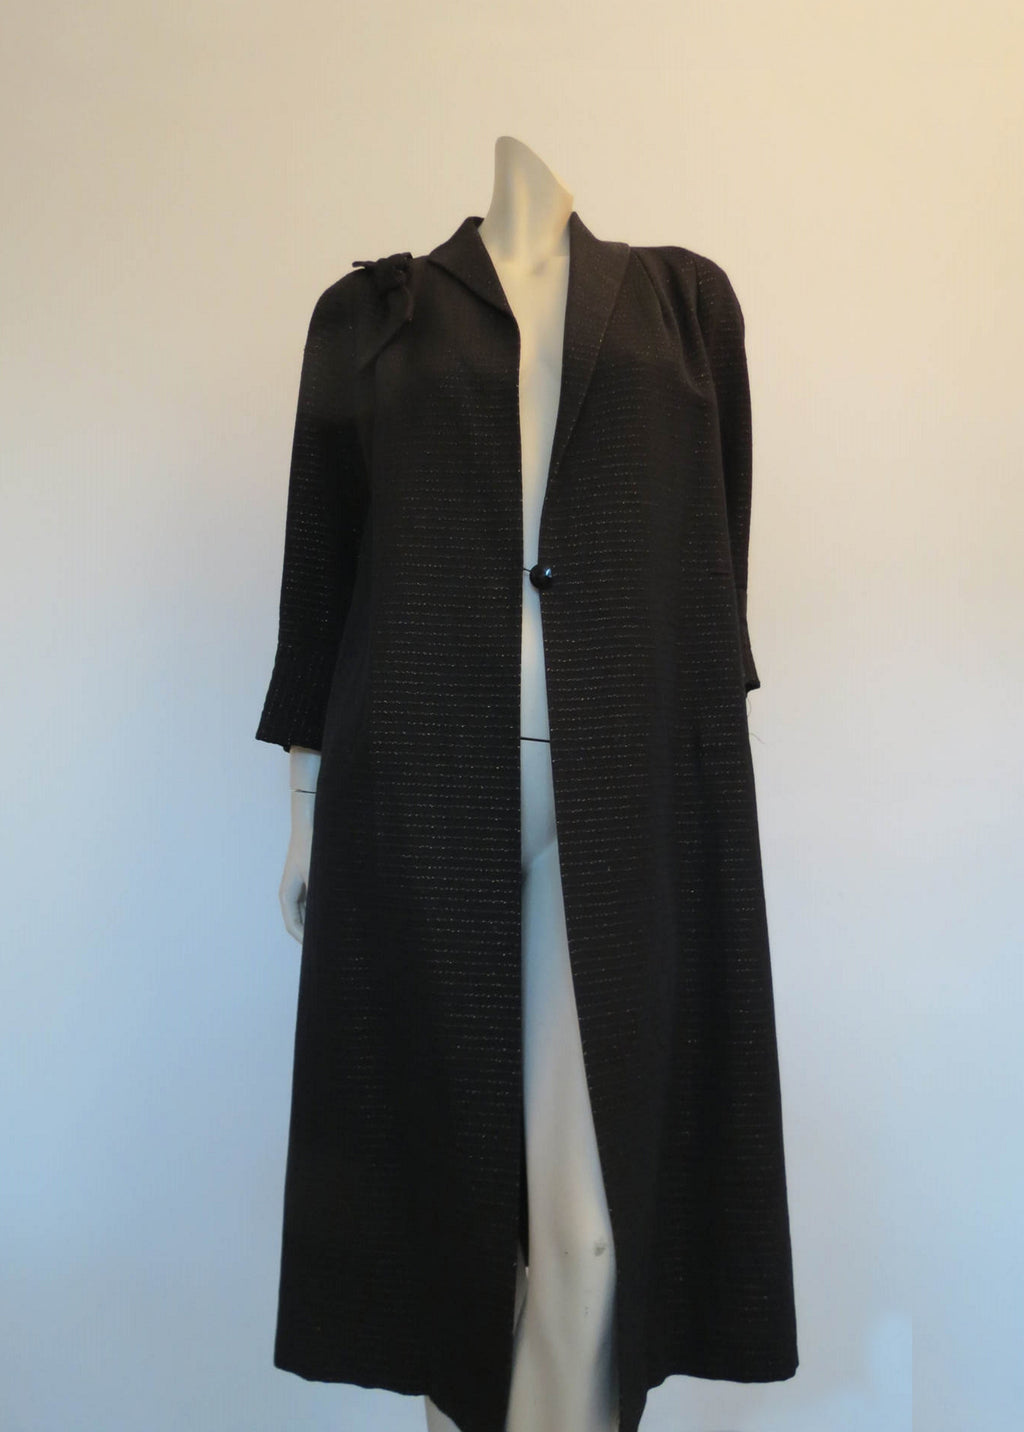 1950s vintage evening coat black wool and gold lurex by leon cutler